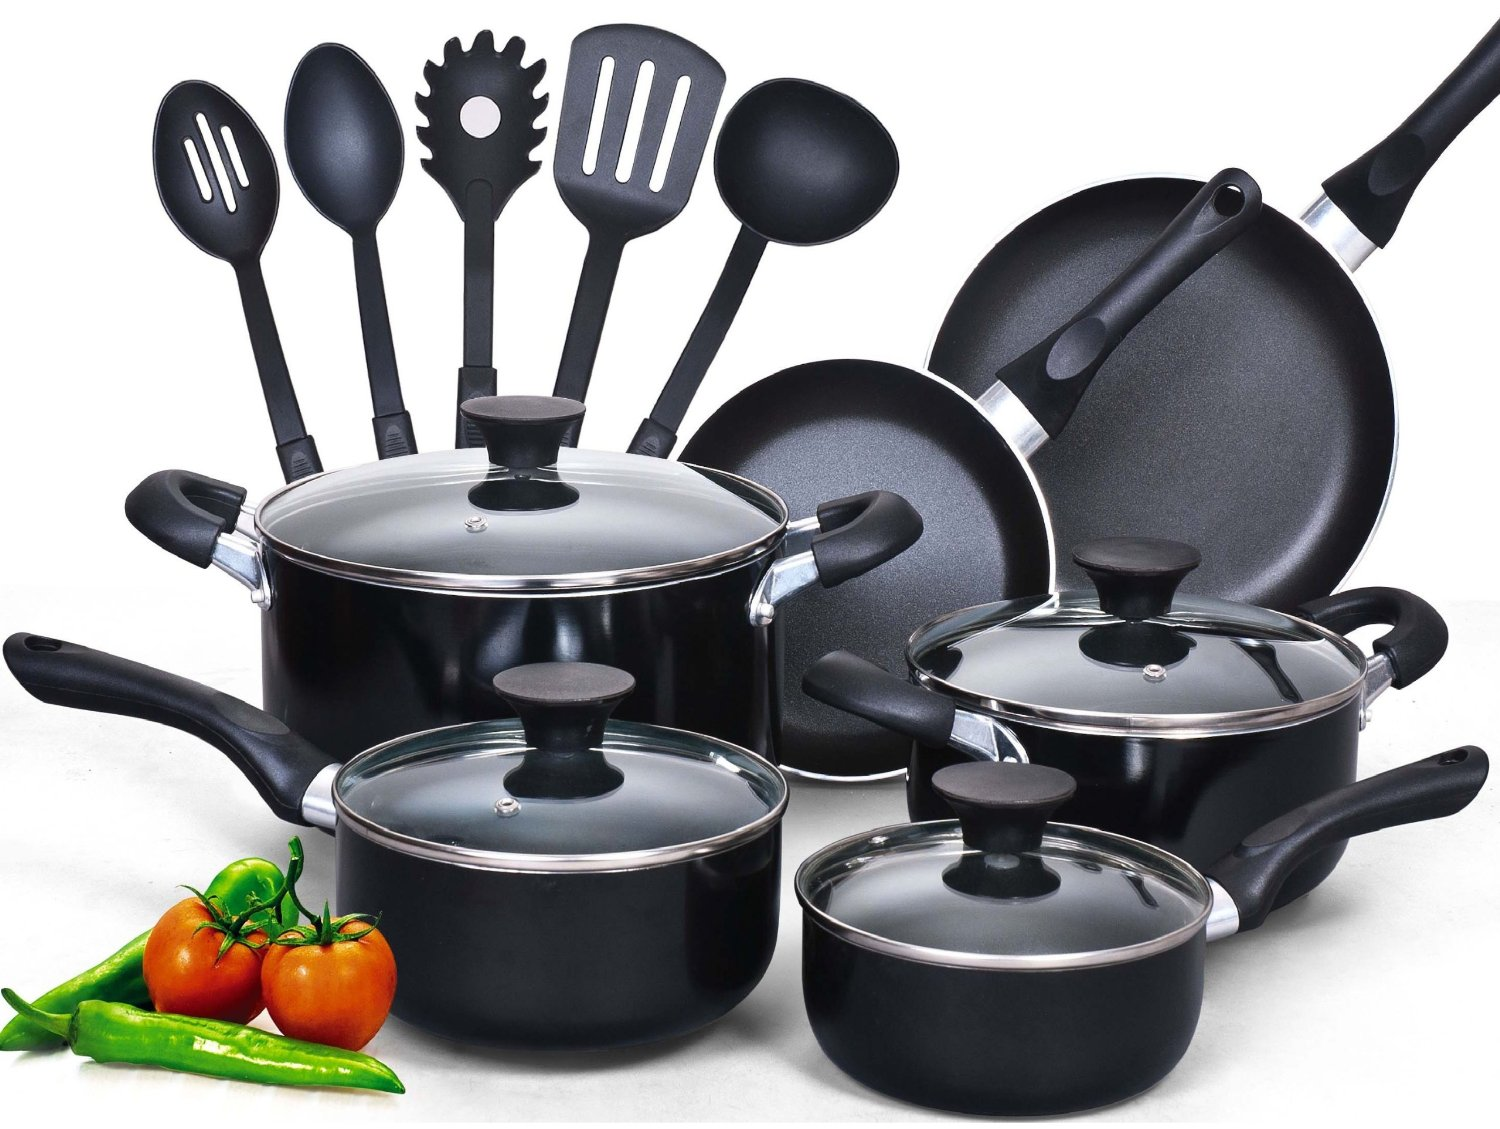 Cook N Home 15 Piece Nonstick Set Review